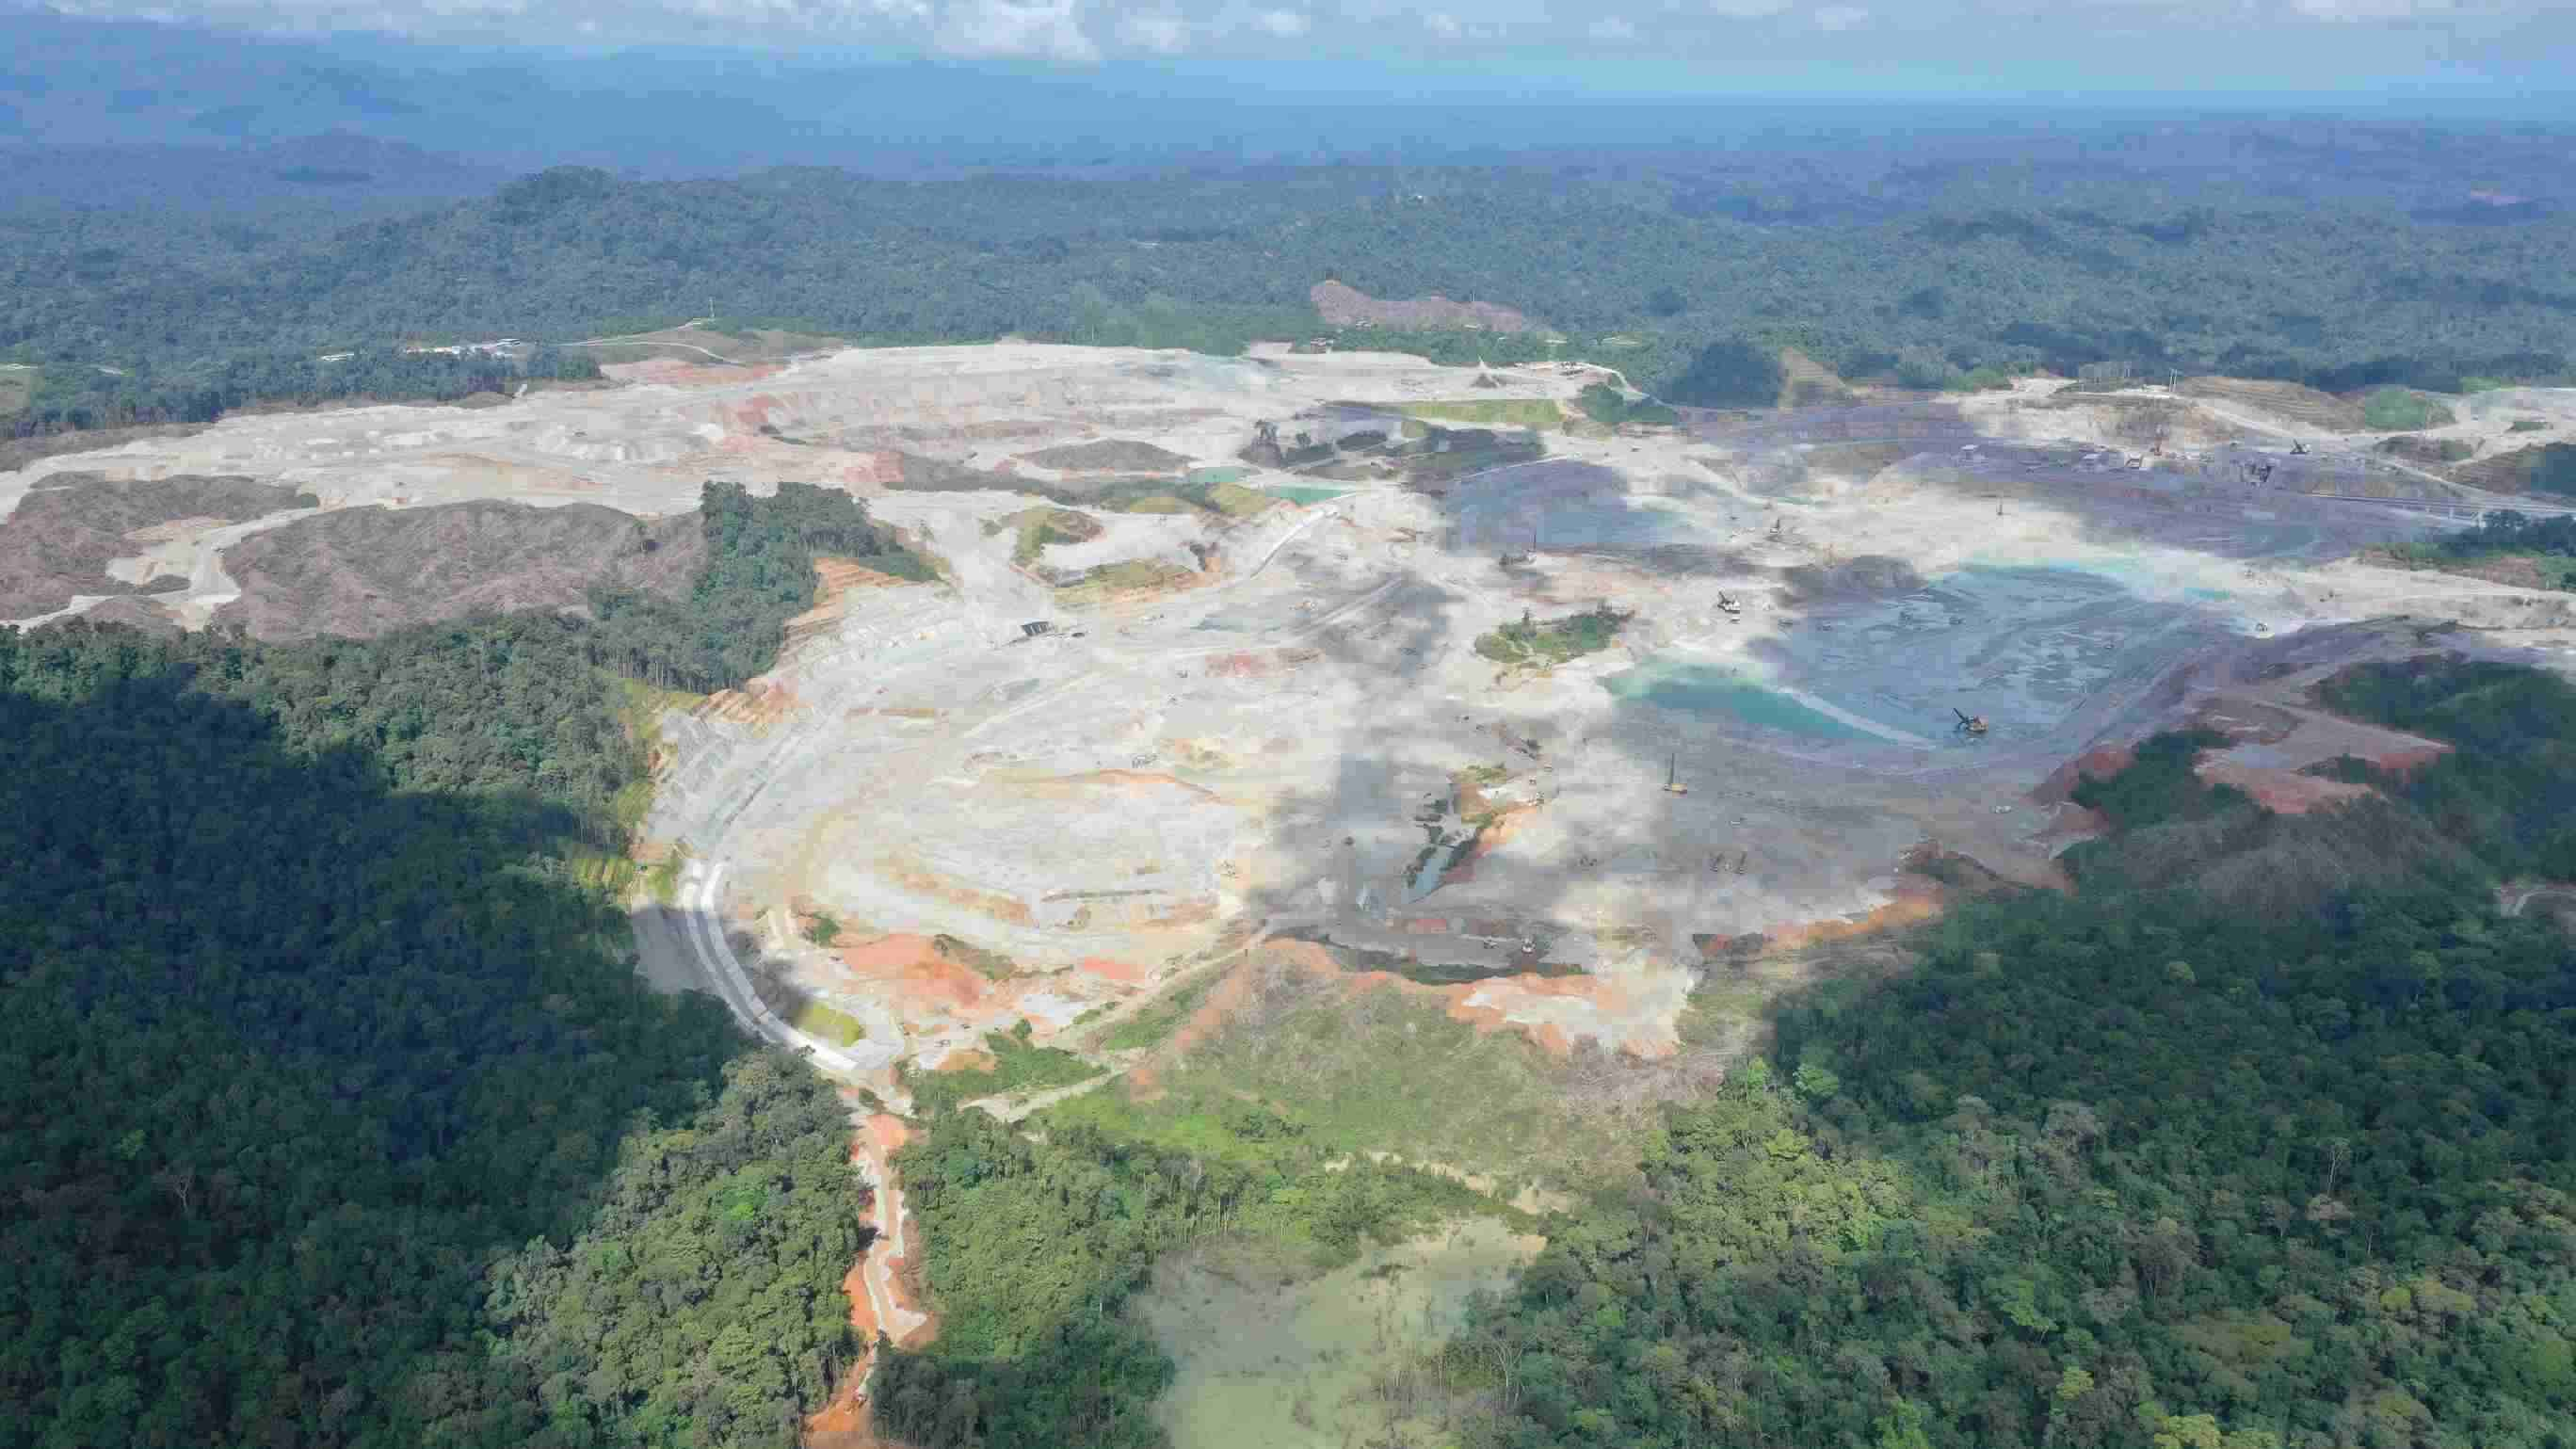 LatAm's top miners cut capex by US$2.7bn due to COVID-19 chaos